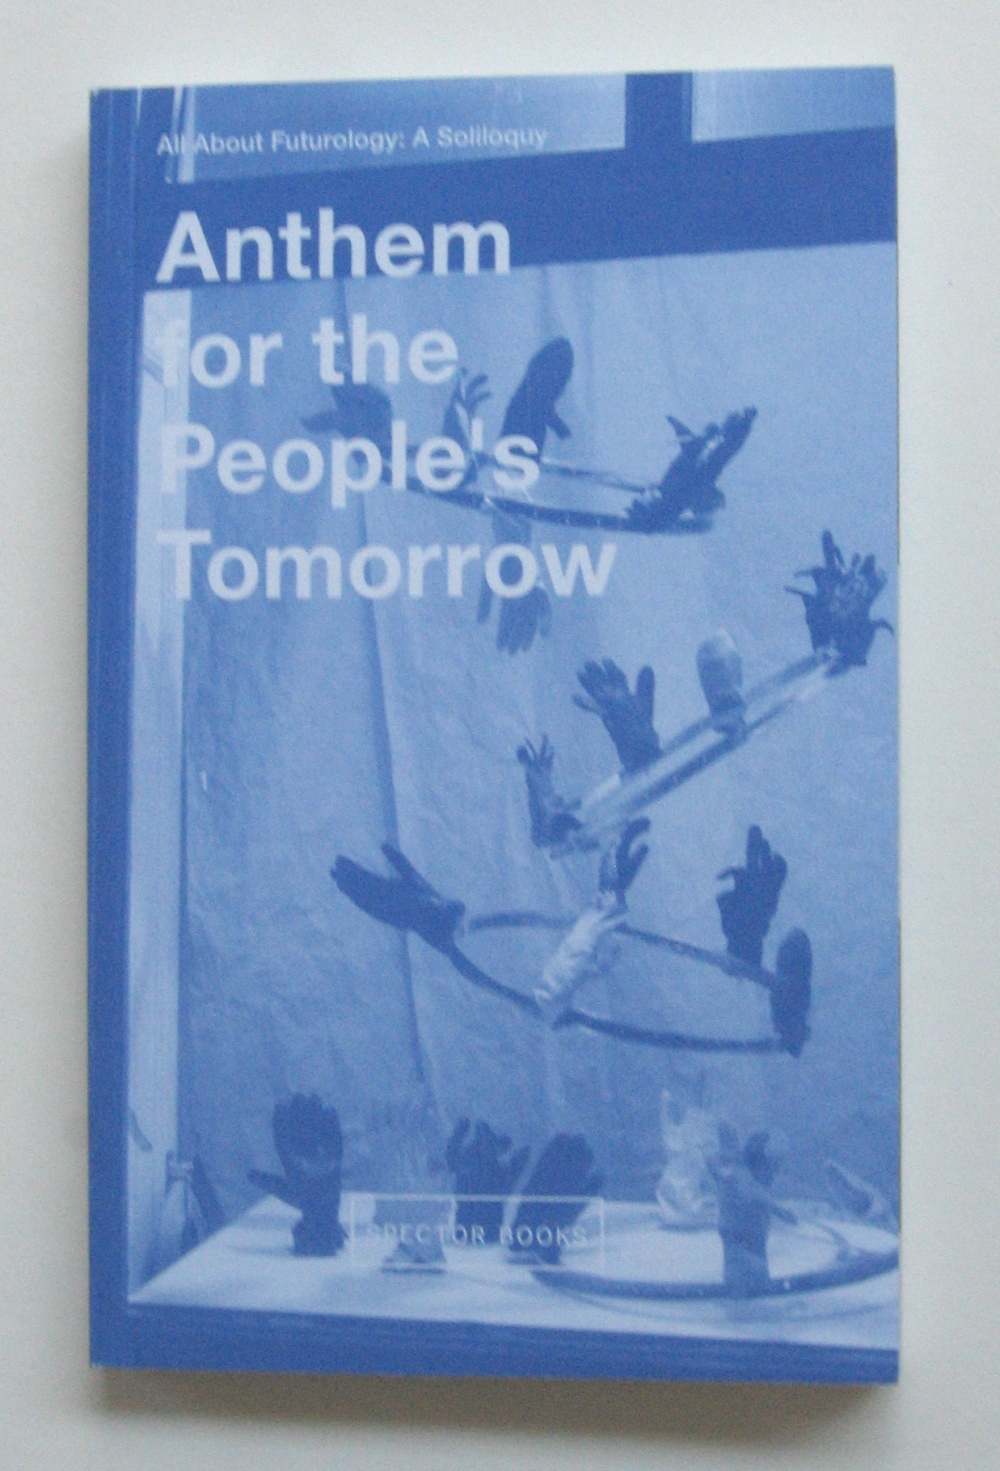 Anthem for the People's Tomorrow